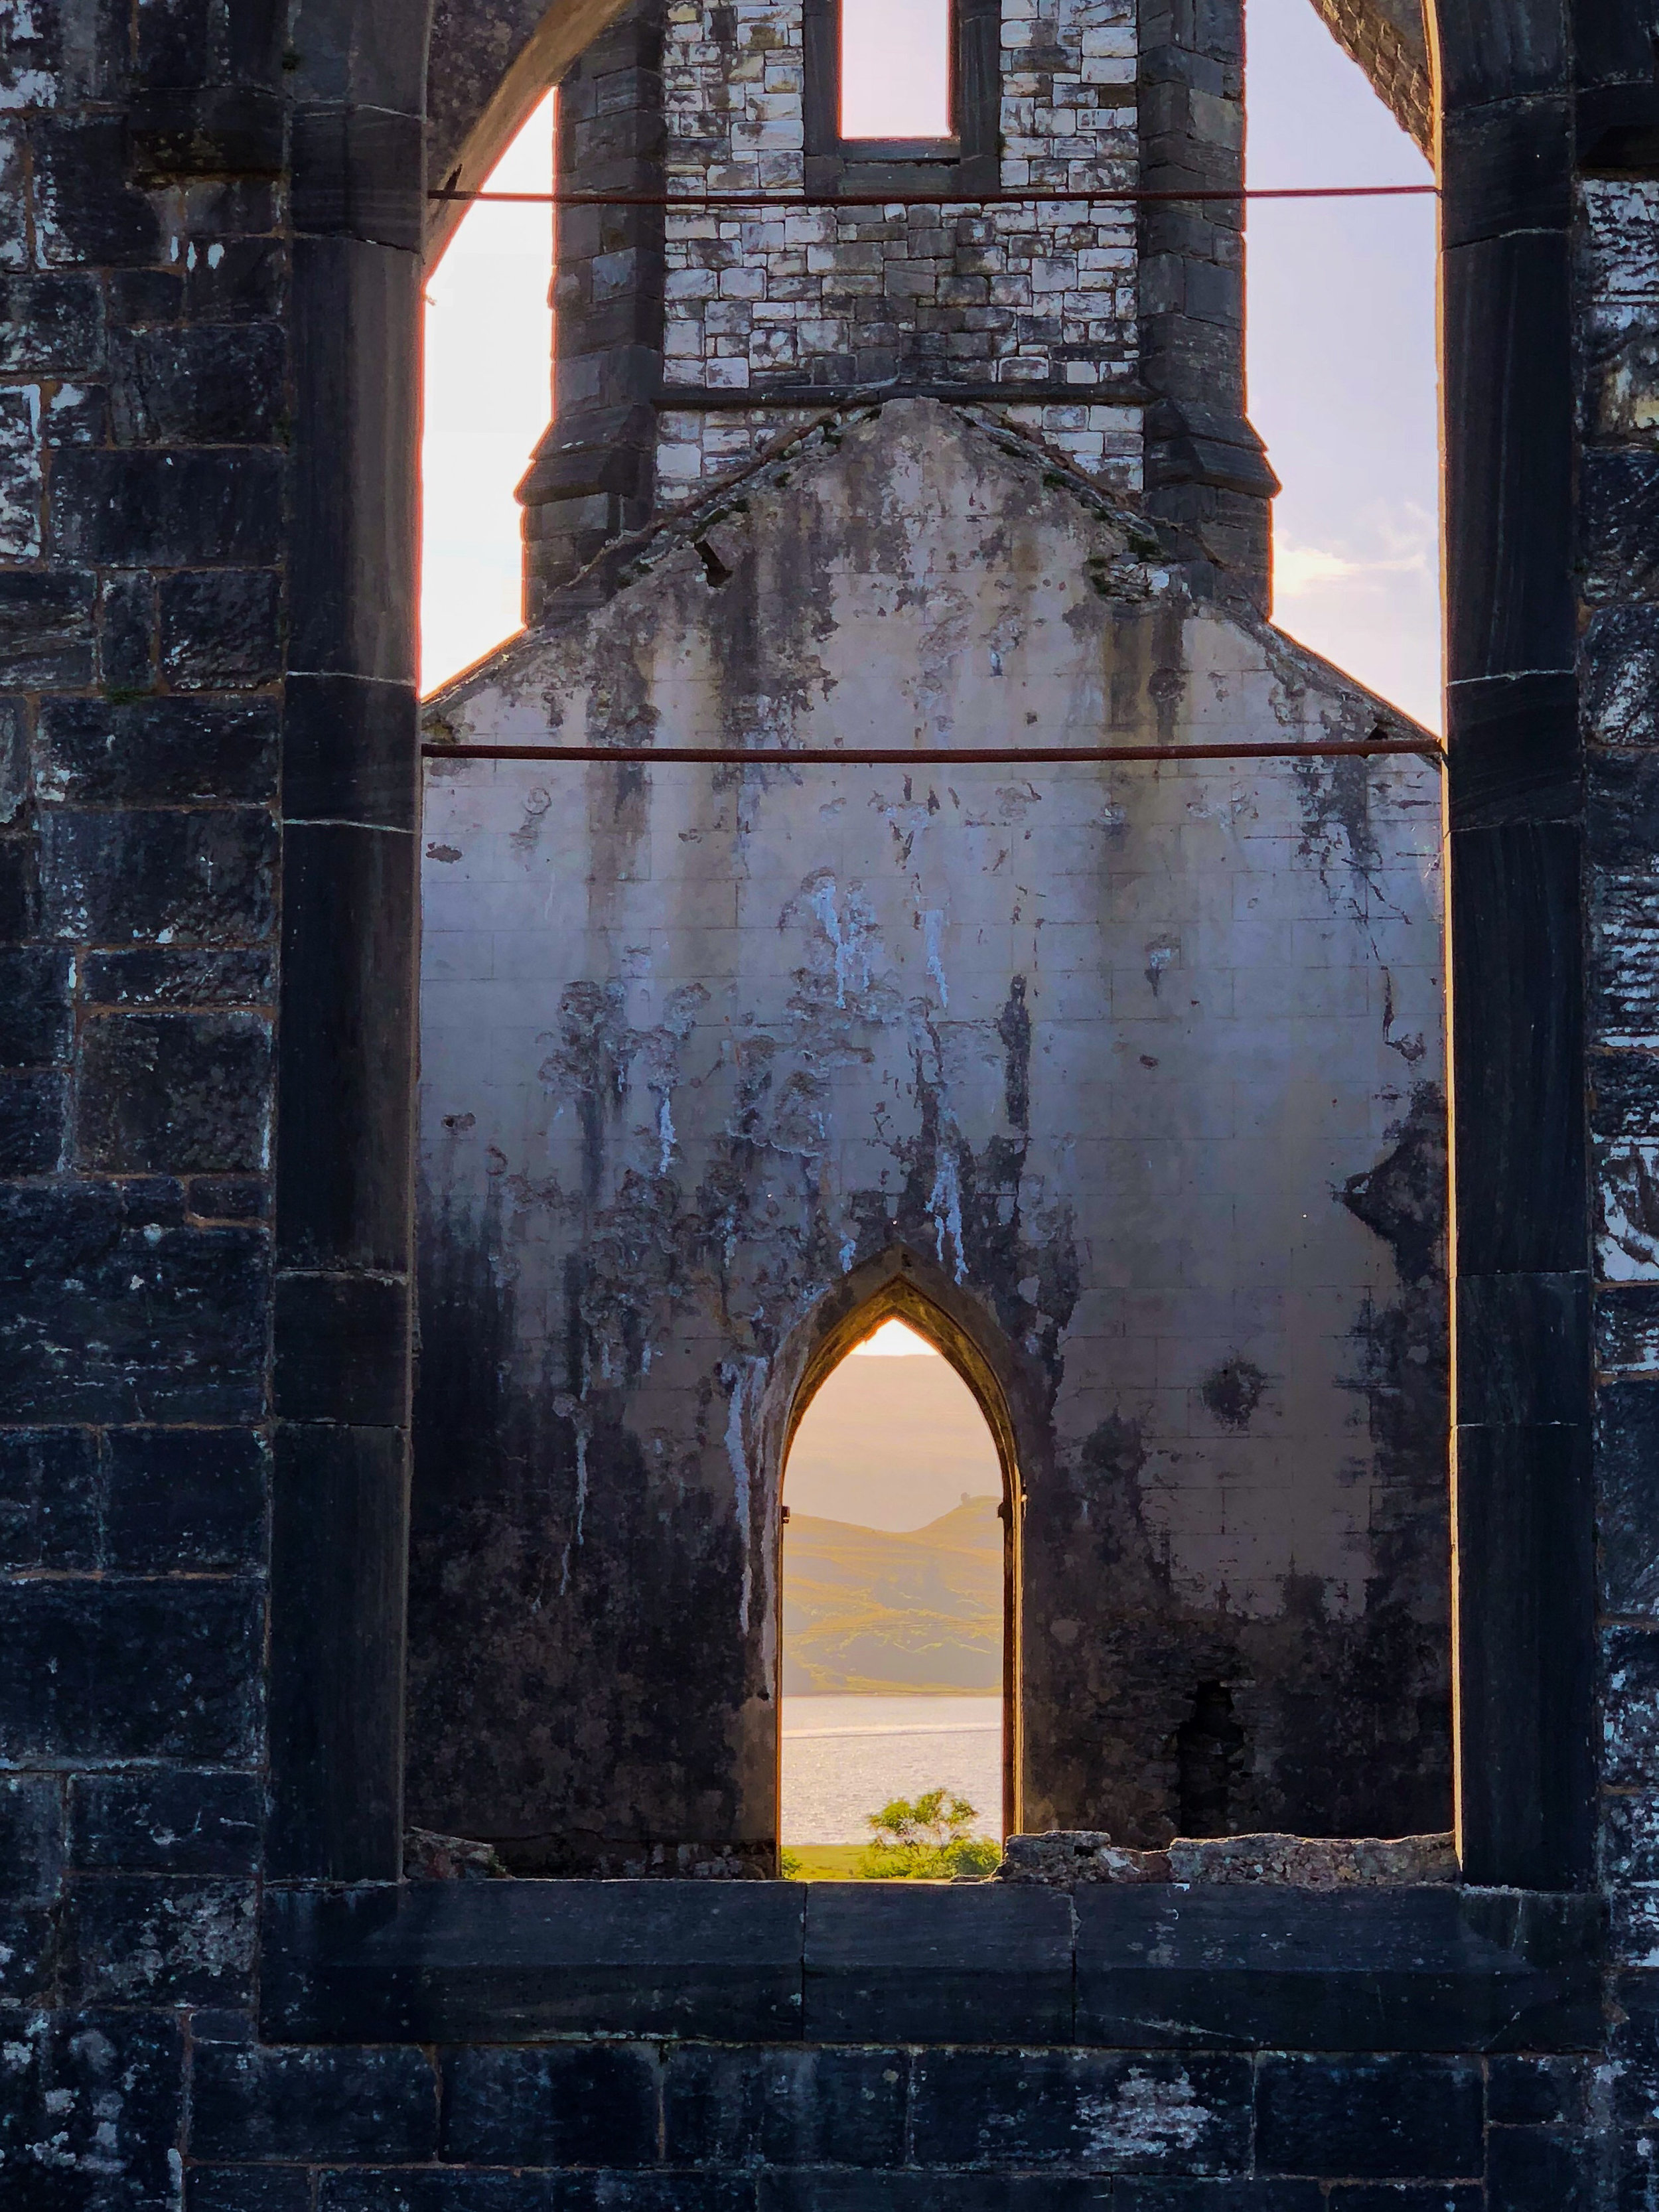 Dunlewy Church, County Donegal, Ireland.